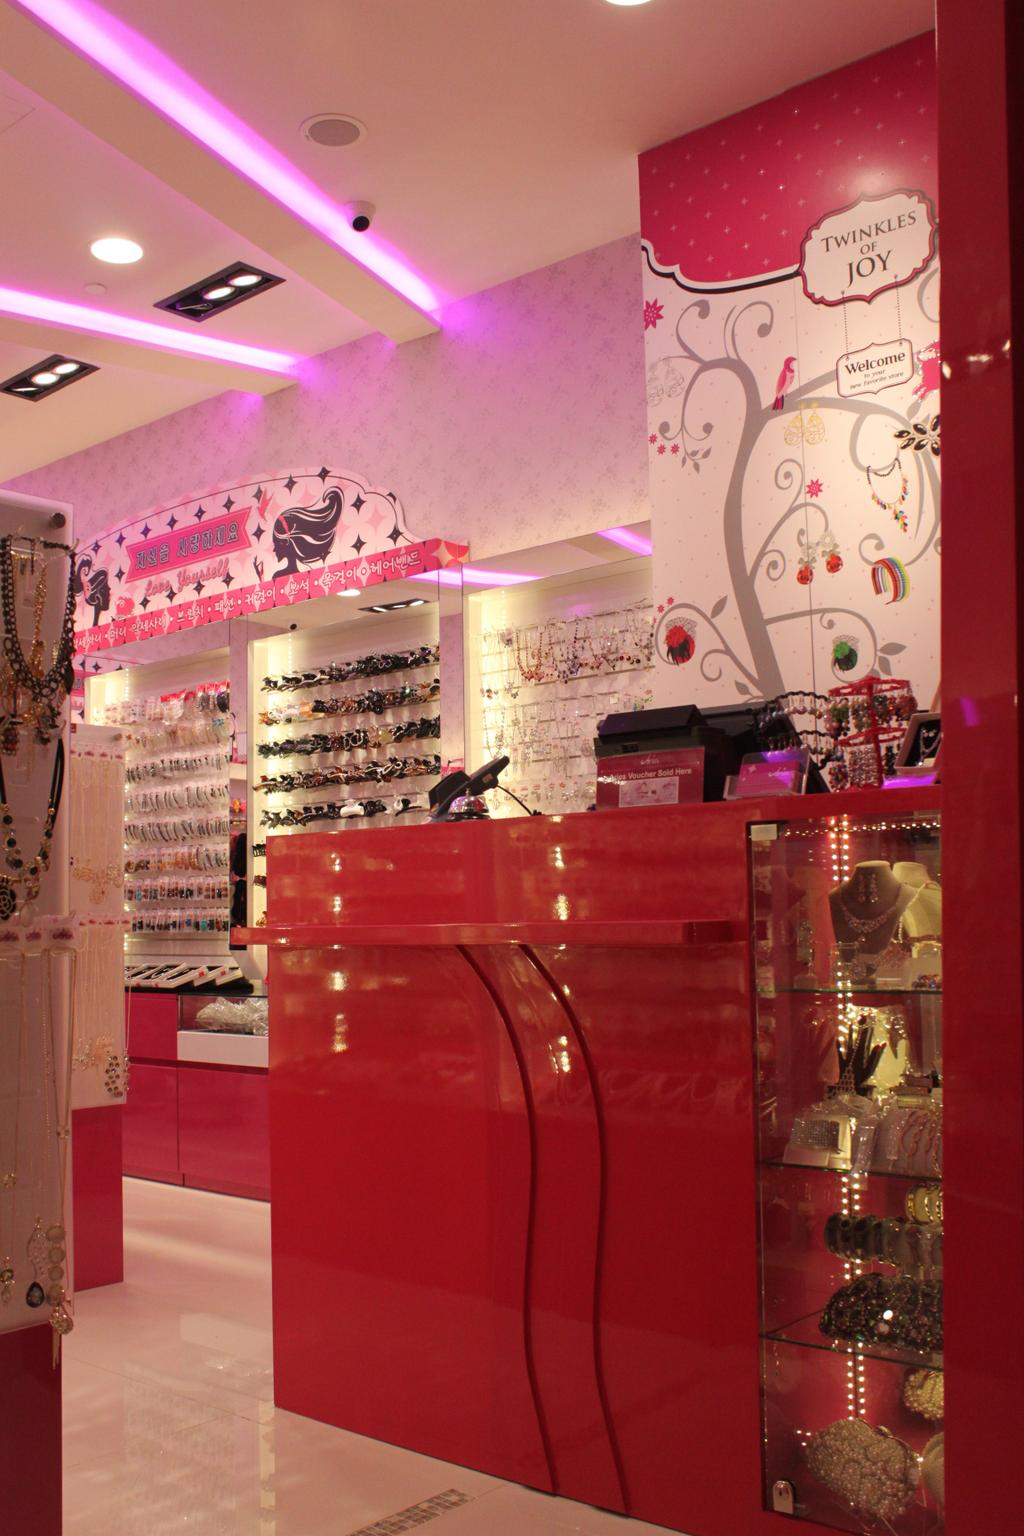 Aries (Westgate), Commercial, Interior Designer, Le Interi, Traditional, Pink Theme, Pink, Concealed Lighting, Pink Lighting, Recessed Lighting, Recessed Lights, Showcase Shelf, Display Shelf, Wallpaper, Pink Wallpaper, Glossy Counter, Glossy Pink Counter, Pink Counter, Counter